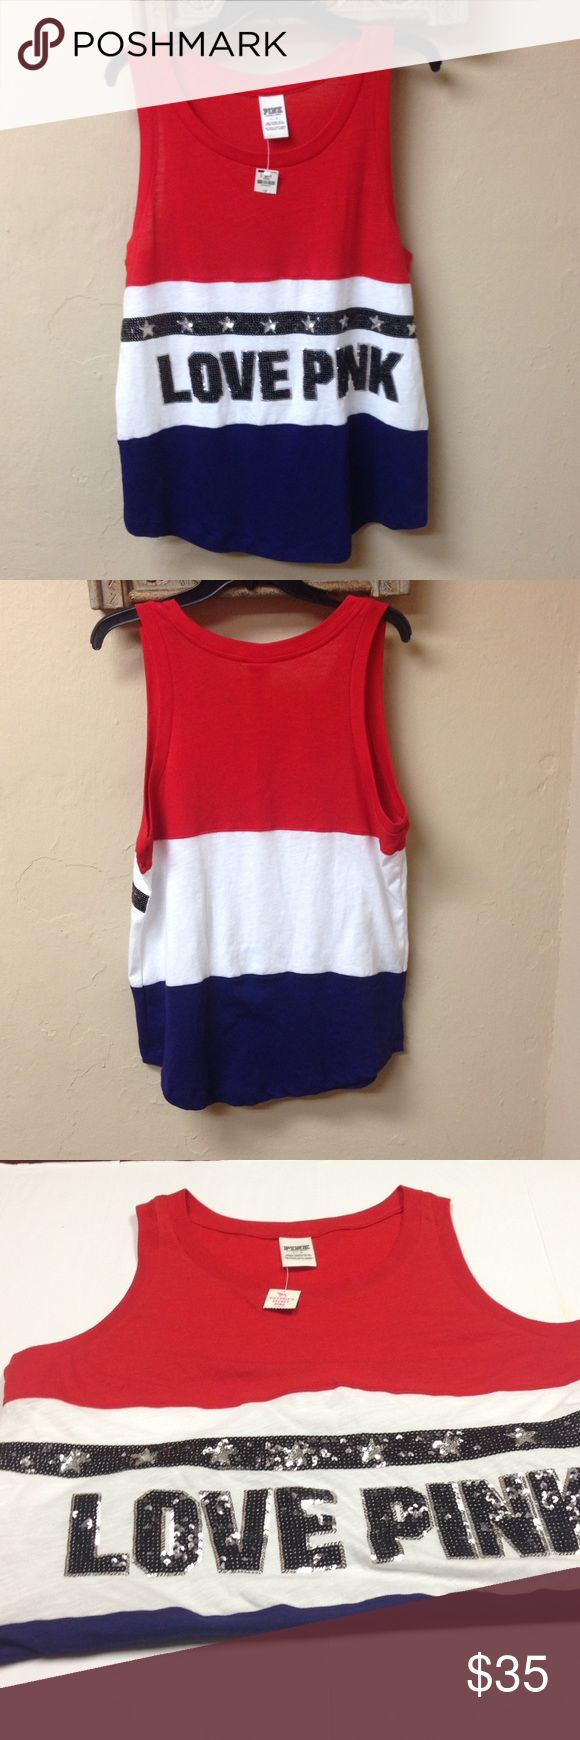 """Price is Firm‼️Victoria's Secret PINK Bling  Top Authentic Victoria's Secret Pink Bling, Sequins Patriotic Tank Top. Color: red, white and blue.  Women's Size Large. Armpit to Armpit approx.. 20"""". ‼️No Trades‼️ PINK Victoria's Secret Tops Tank Tops"""